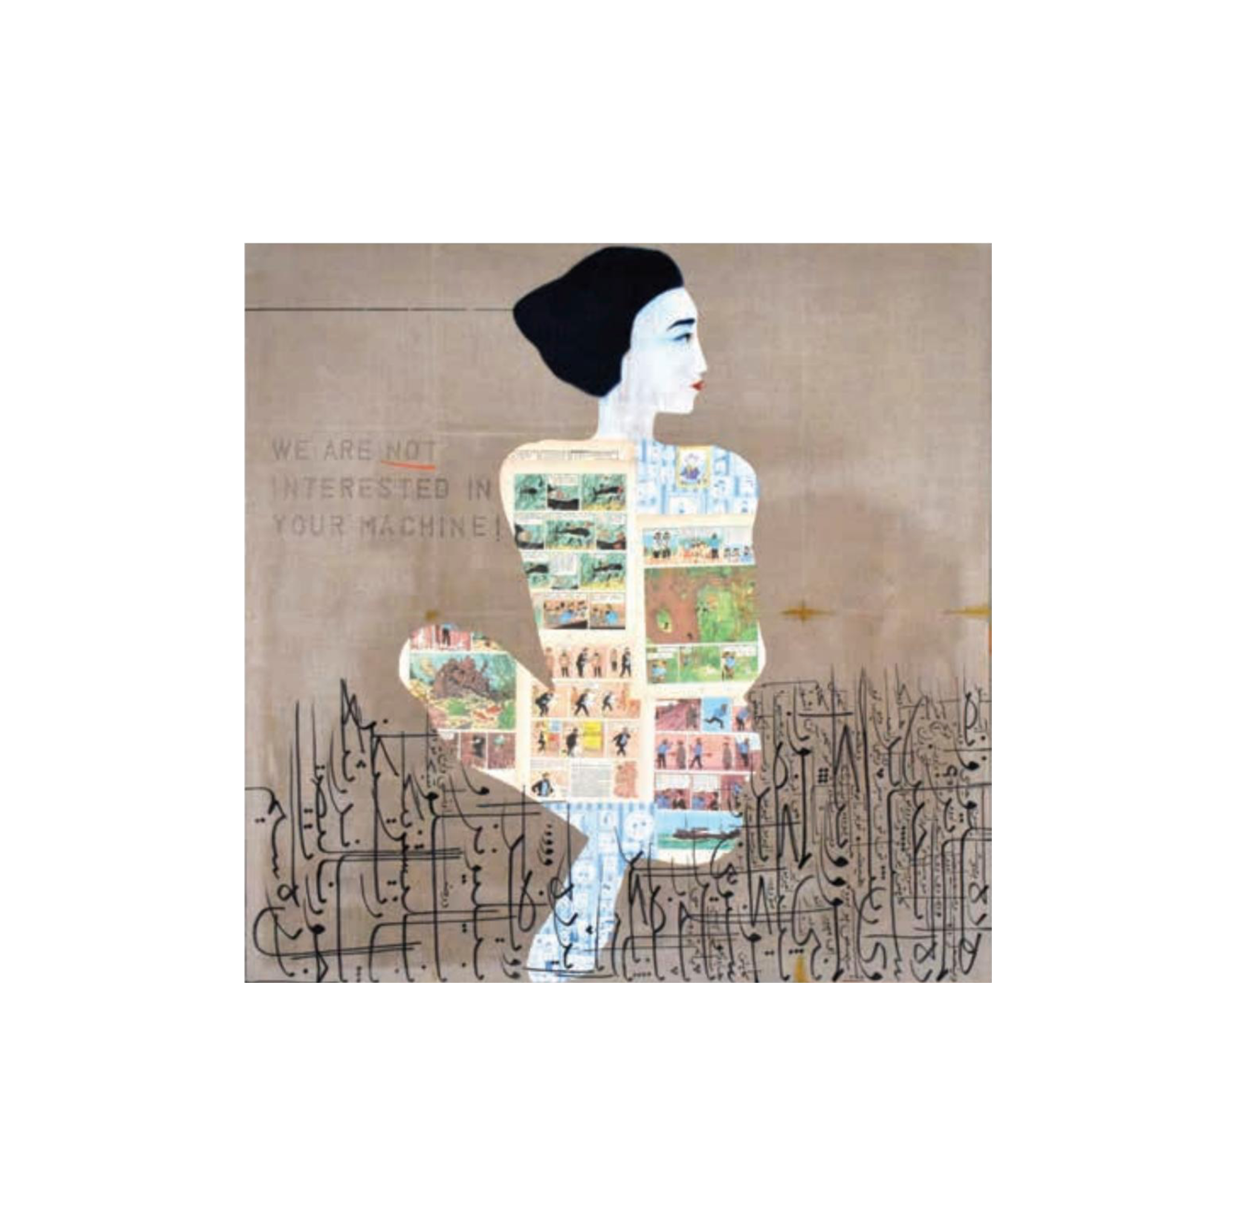 Jason Noushin, We are not Interested in Your Machines, oil, shellac, ink, turmeric and comik book leaves on linen, 122 x 122 cm, 2017